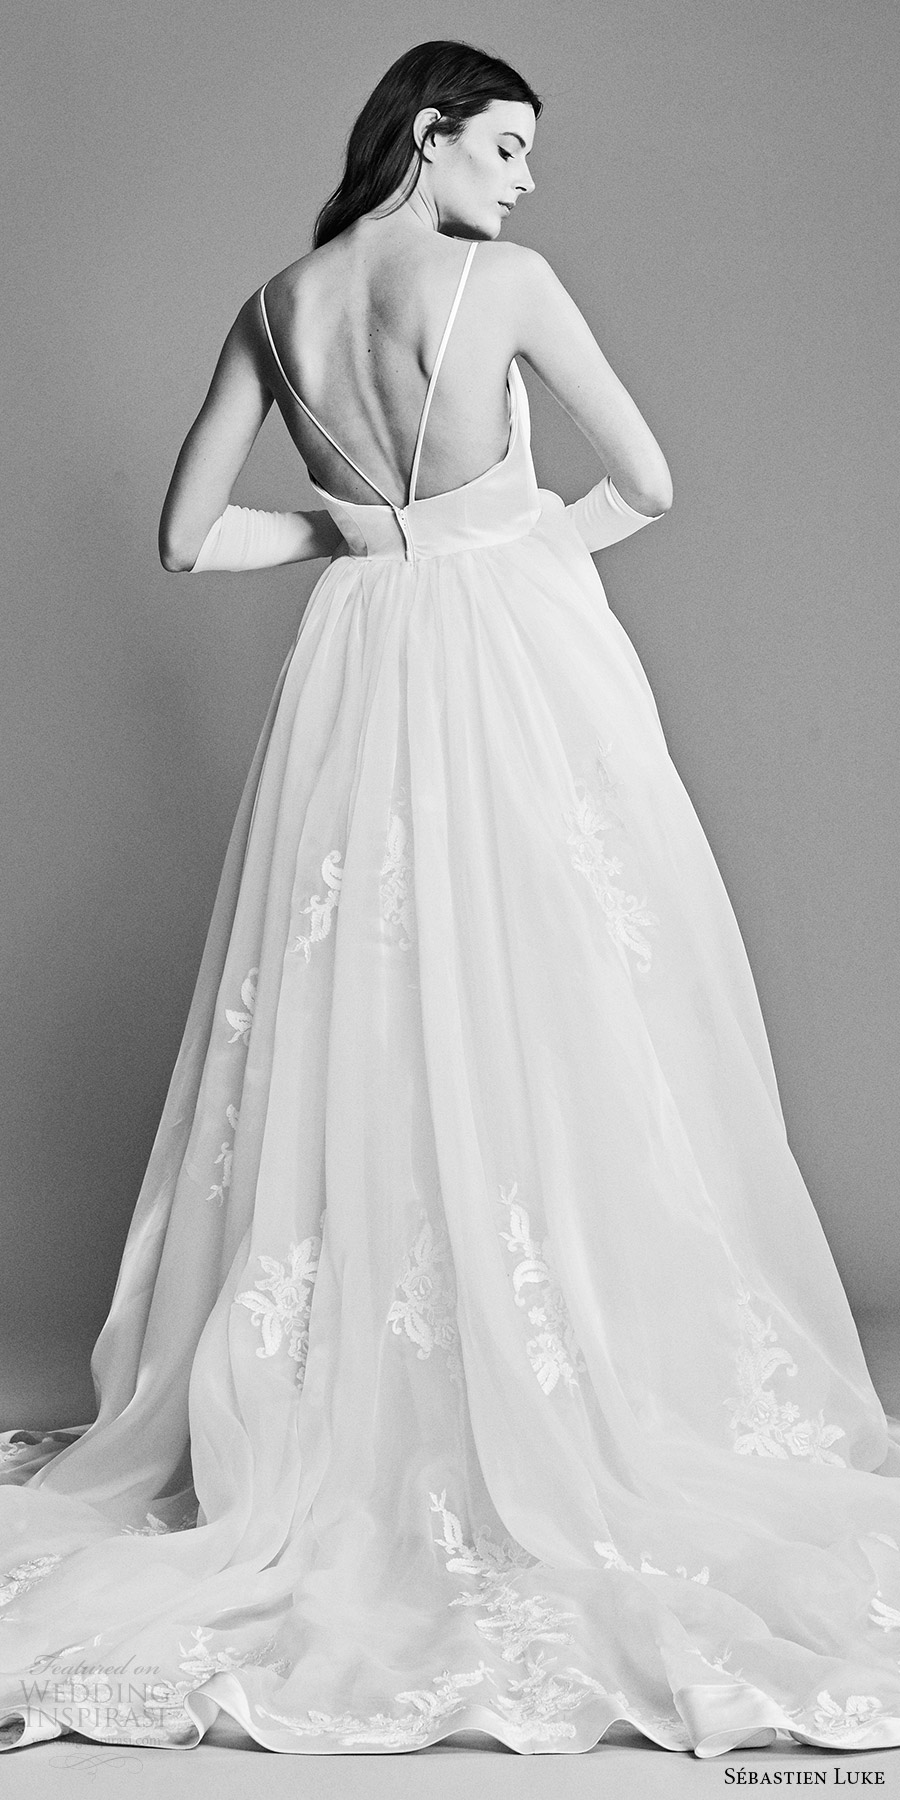 sebastien luke spring 2018 bridal sleeveless bateau neck ball gown wedding dress lace skirt (18b15a) zbv romantic chapel train